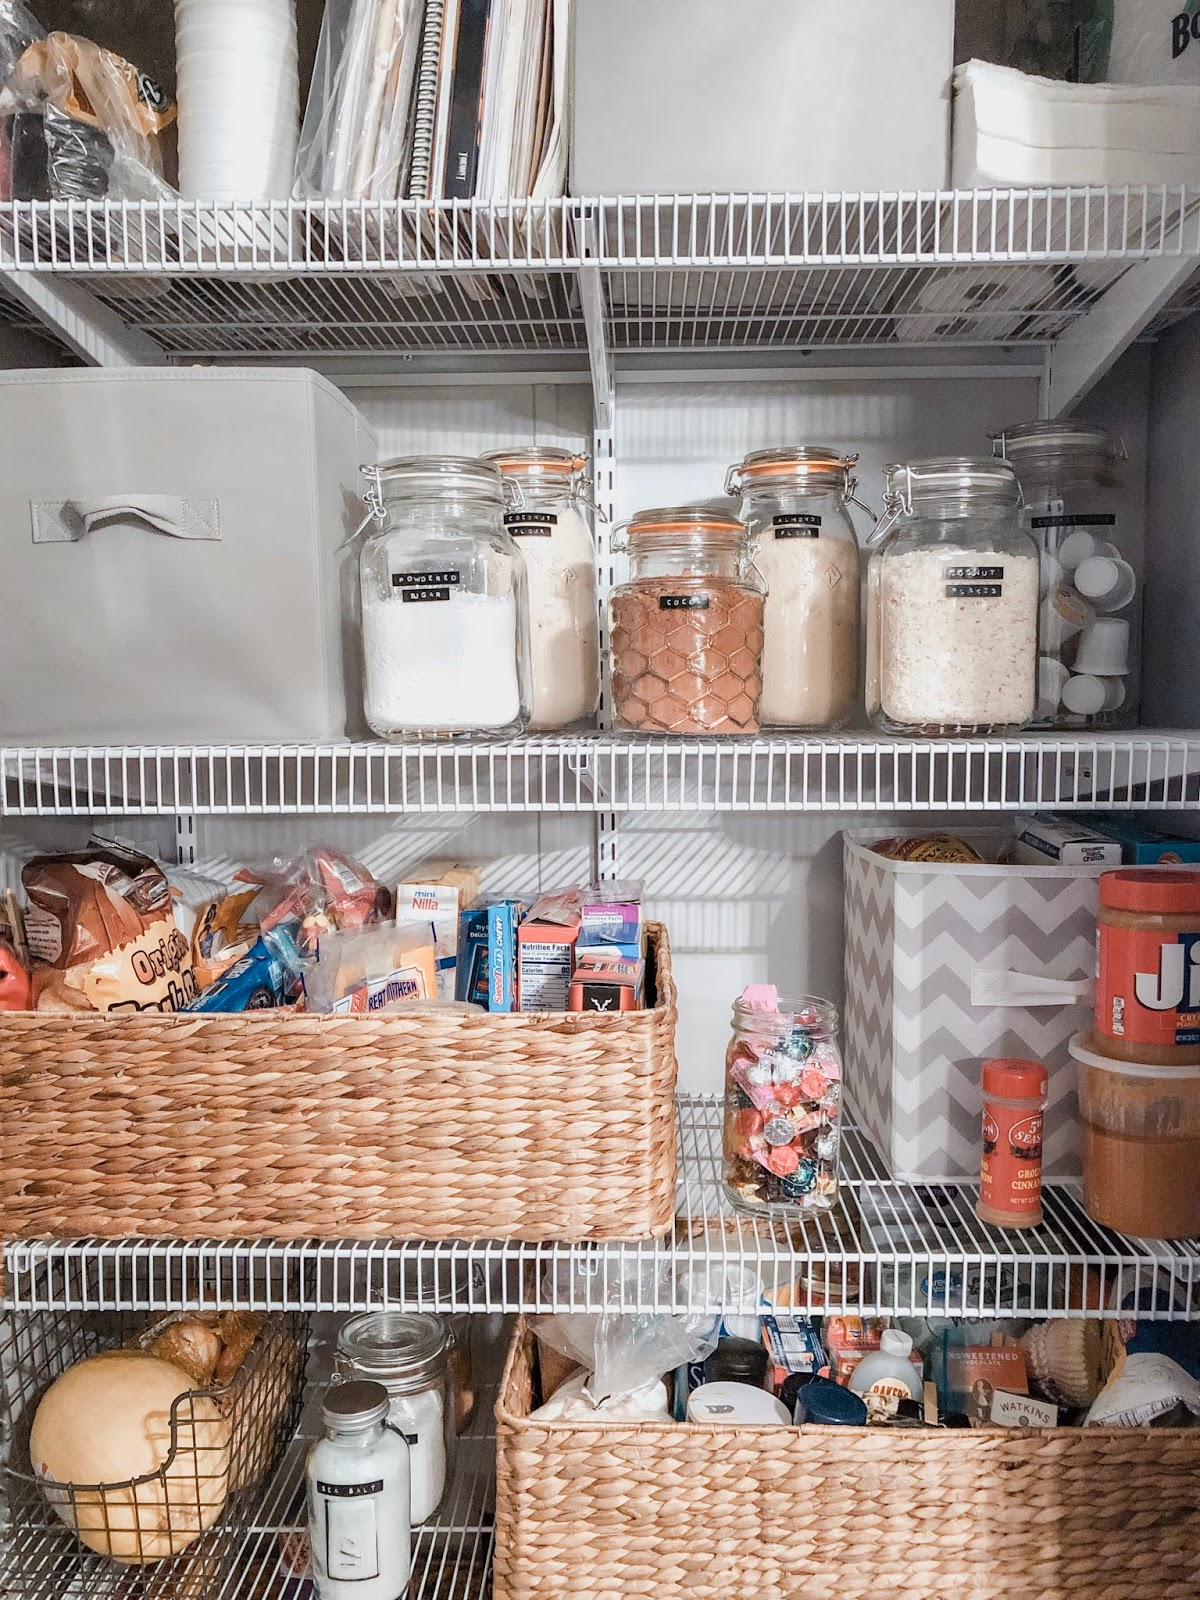 spring-cleaning-pantry-organization-storage-jars-baskets